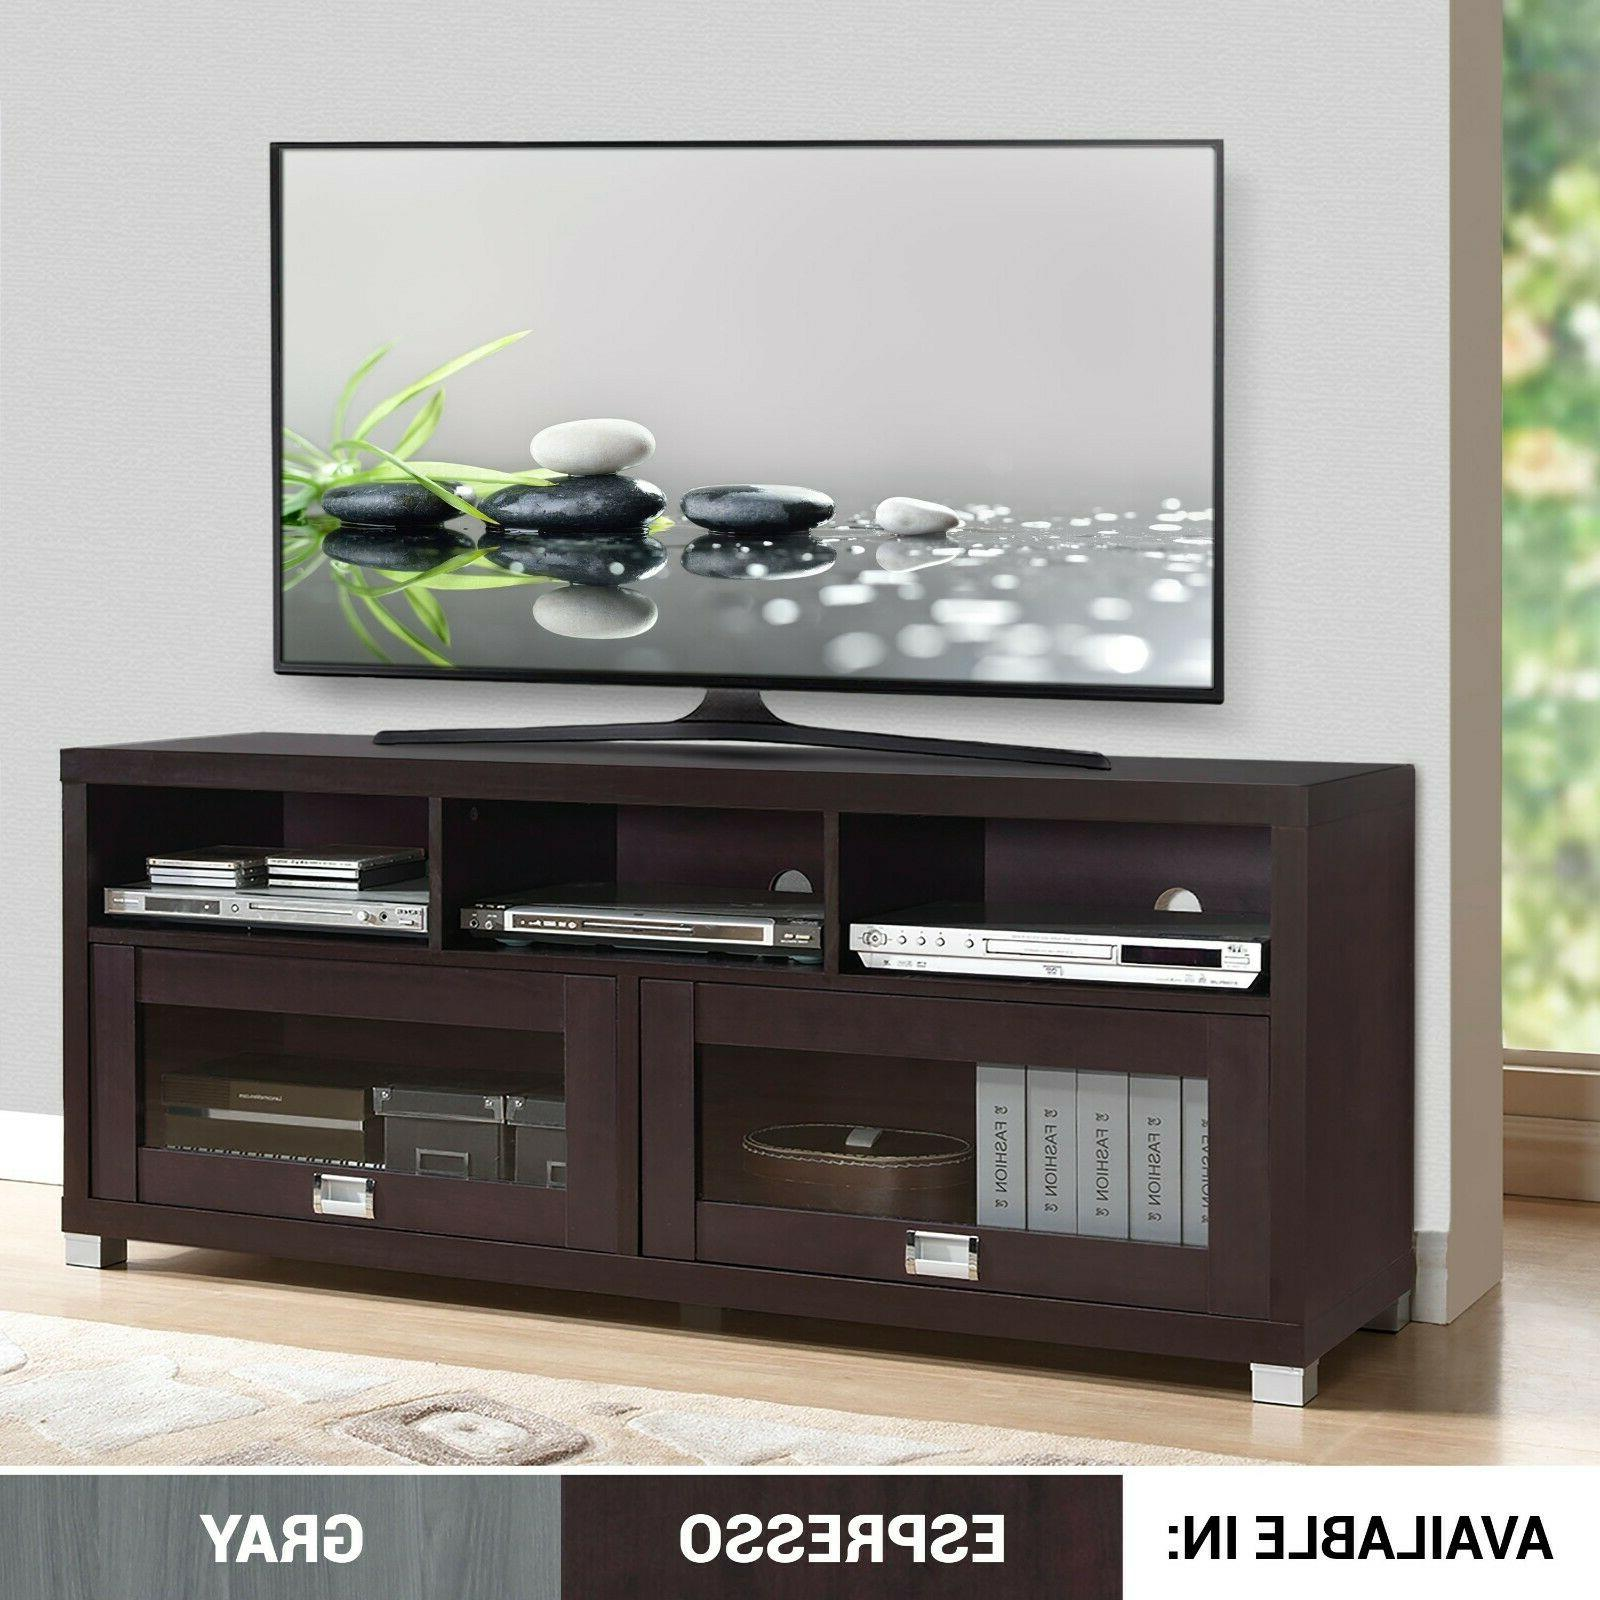 TV Inch Flat Home Console